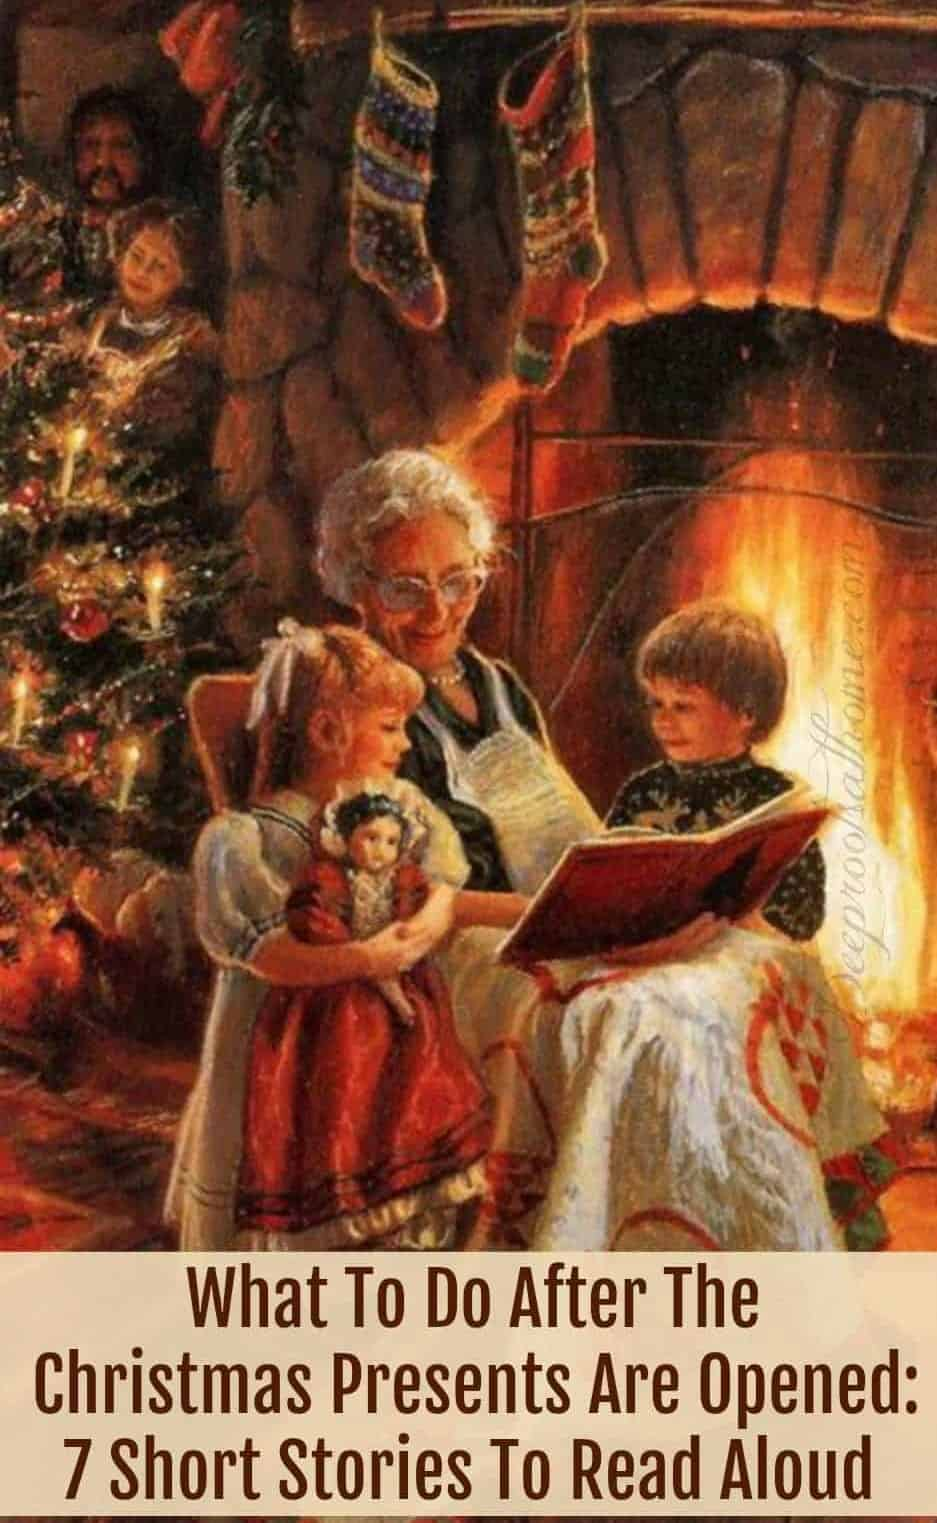 What To Do After The Christmas Presents Are Opened: 7 Short Stories To Read Aloud, A chilly winter night with Grandma reading aloud